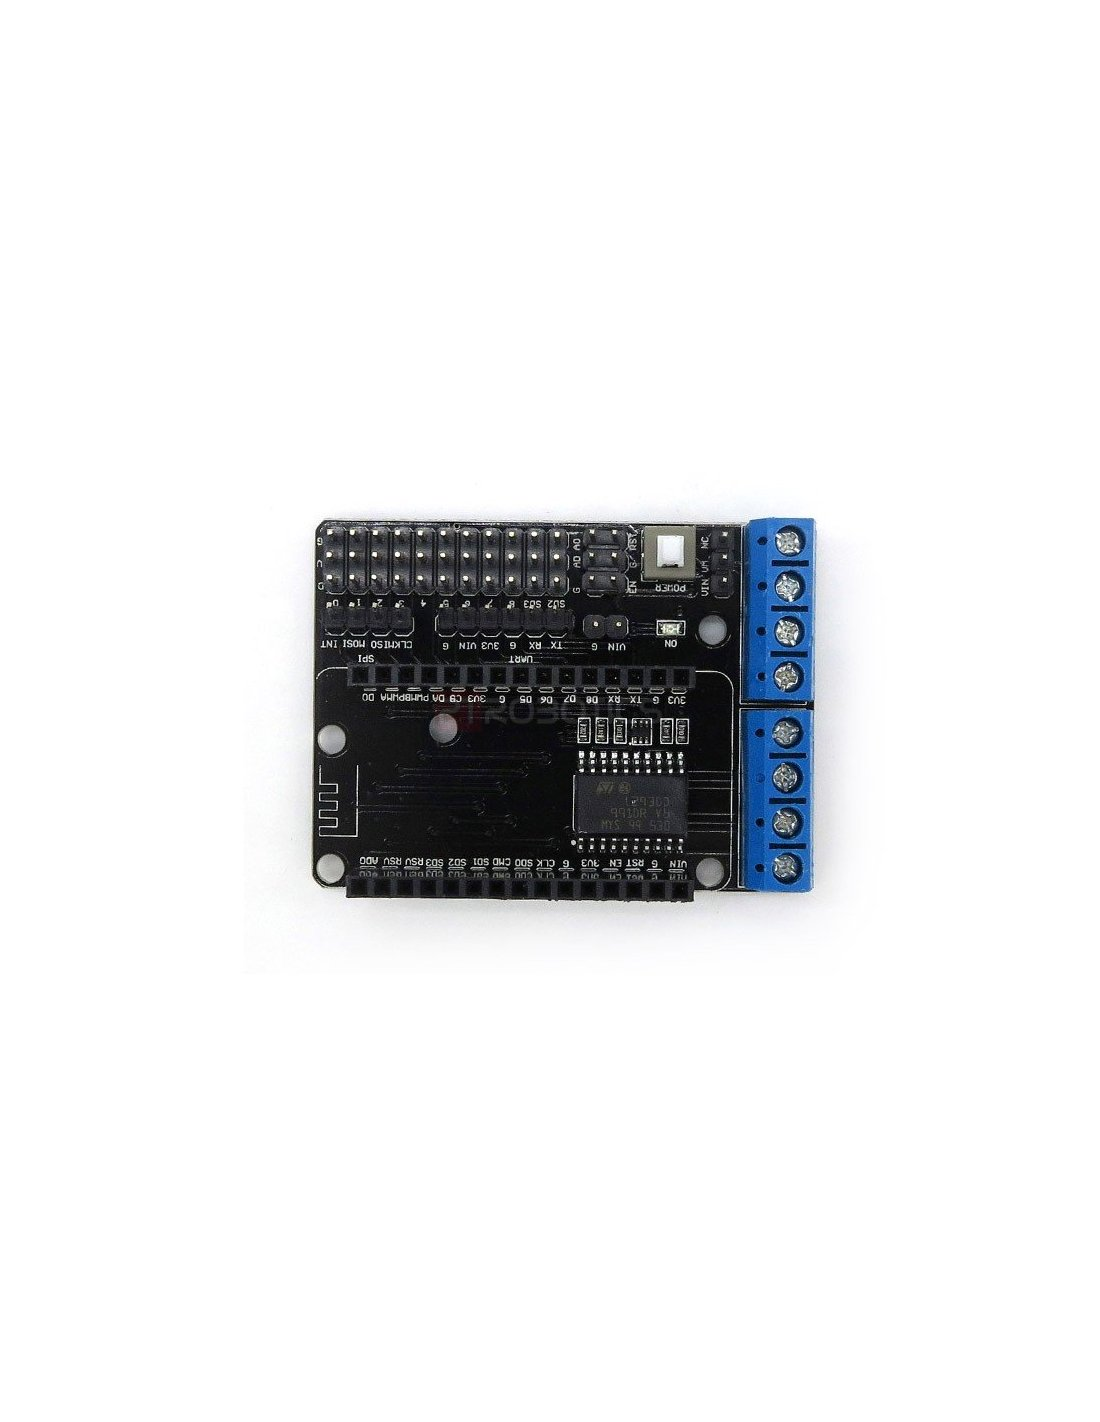 5141 L293d Wifi Motor Drive Expansion Board Shield For Arduino Nodemcu Lua Esp 12eon Arduino I O Expansion